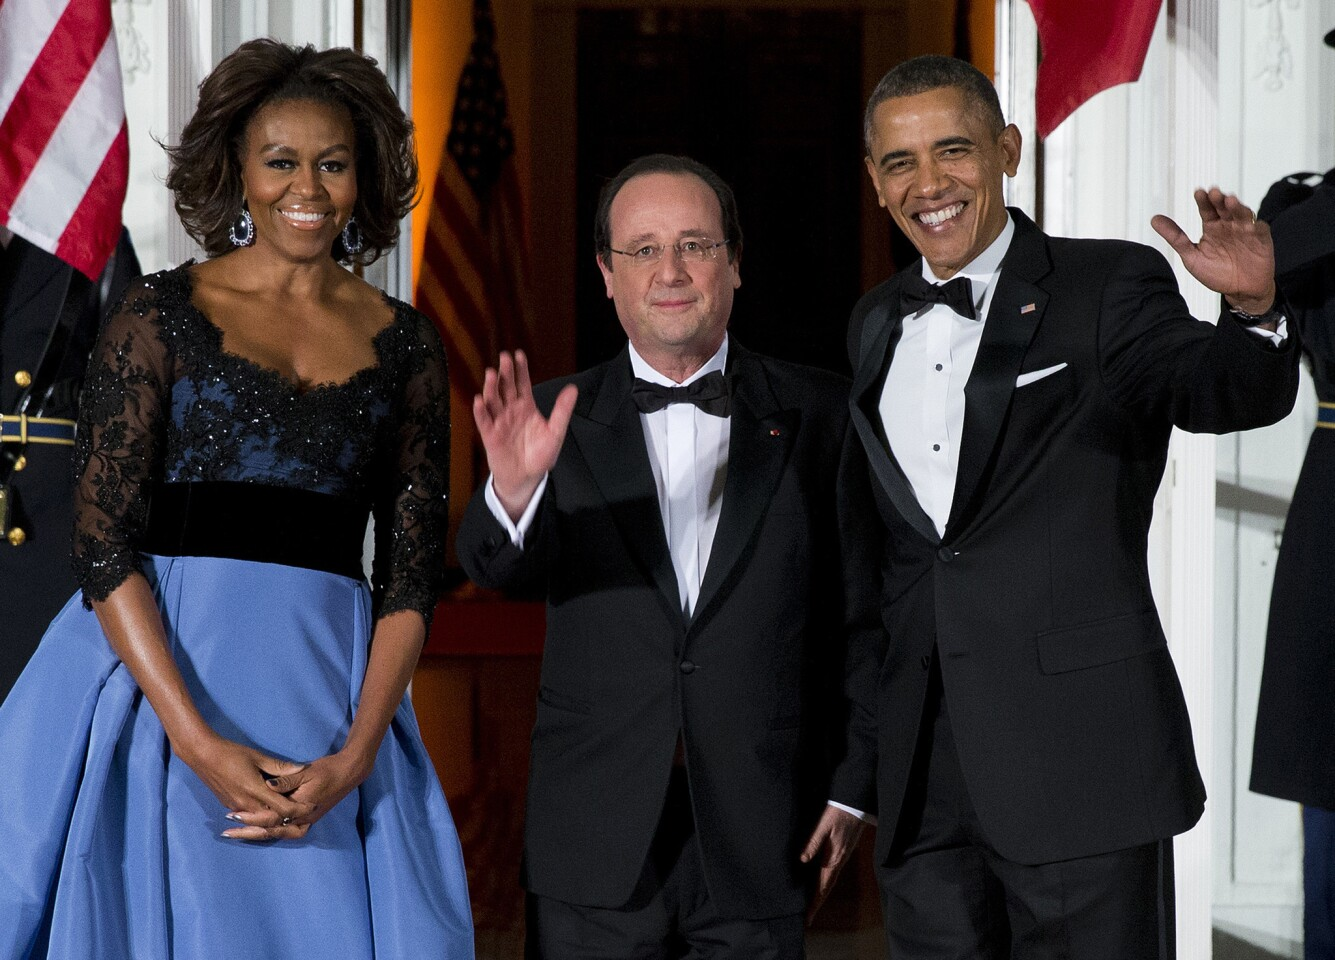 First lady Michelle Obama, left, and President Barack Obama welcome French President Francois Hollande for a State Dinner at the North Portico of the White House. The trip is taking place amid speculation about problems in Hollande's personal life.